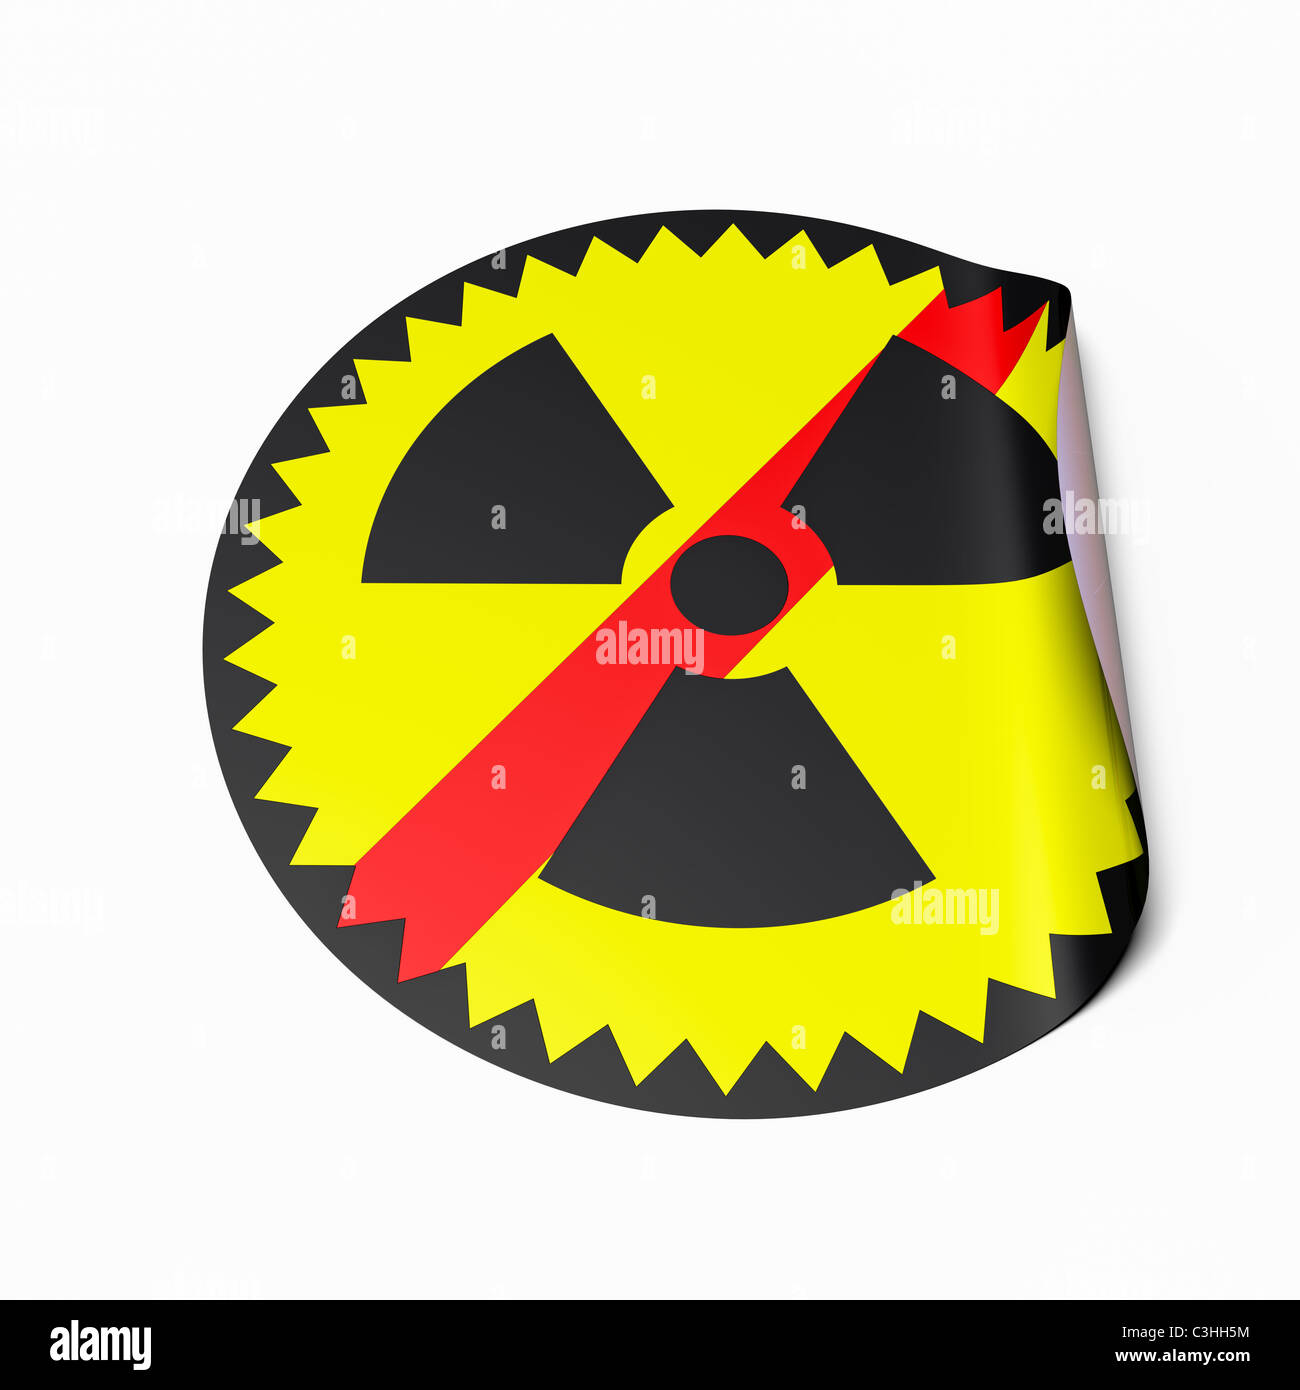 High resolution image of a sticker with crossed out radioactive symbol. Conceptual image for nuclear power phaseout. Stock Photo